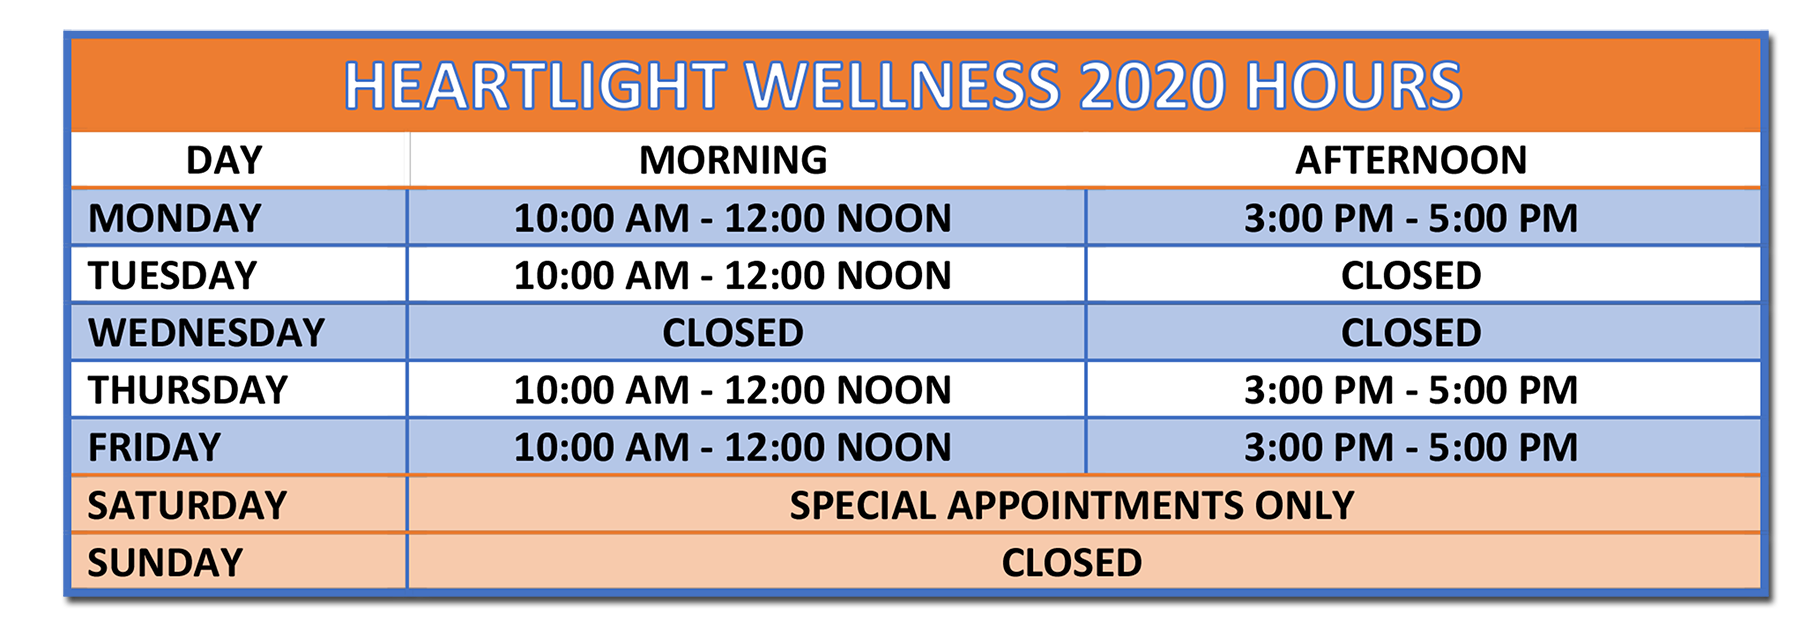 2020 OFFICE HOURS v1 1-17-20png